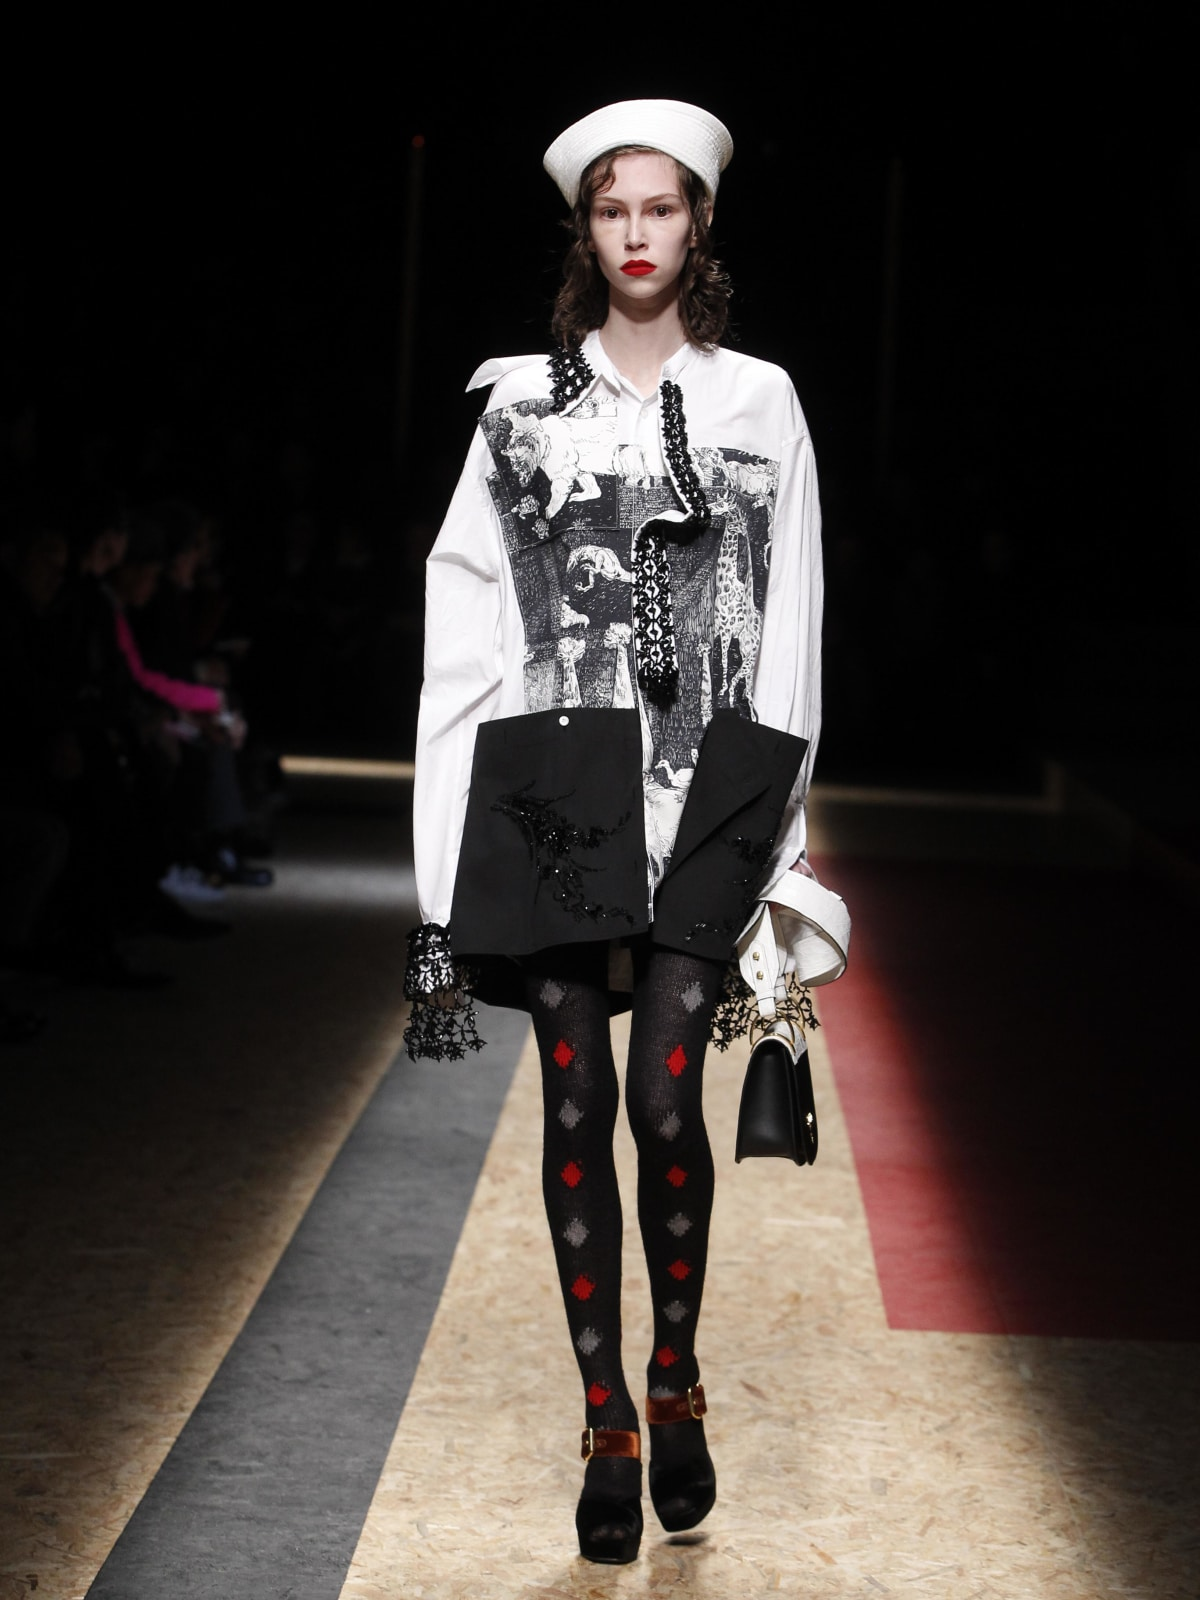 Prada menswear show with women's look in Milan January 2016